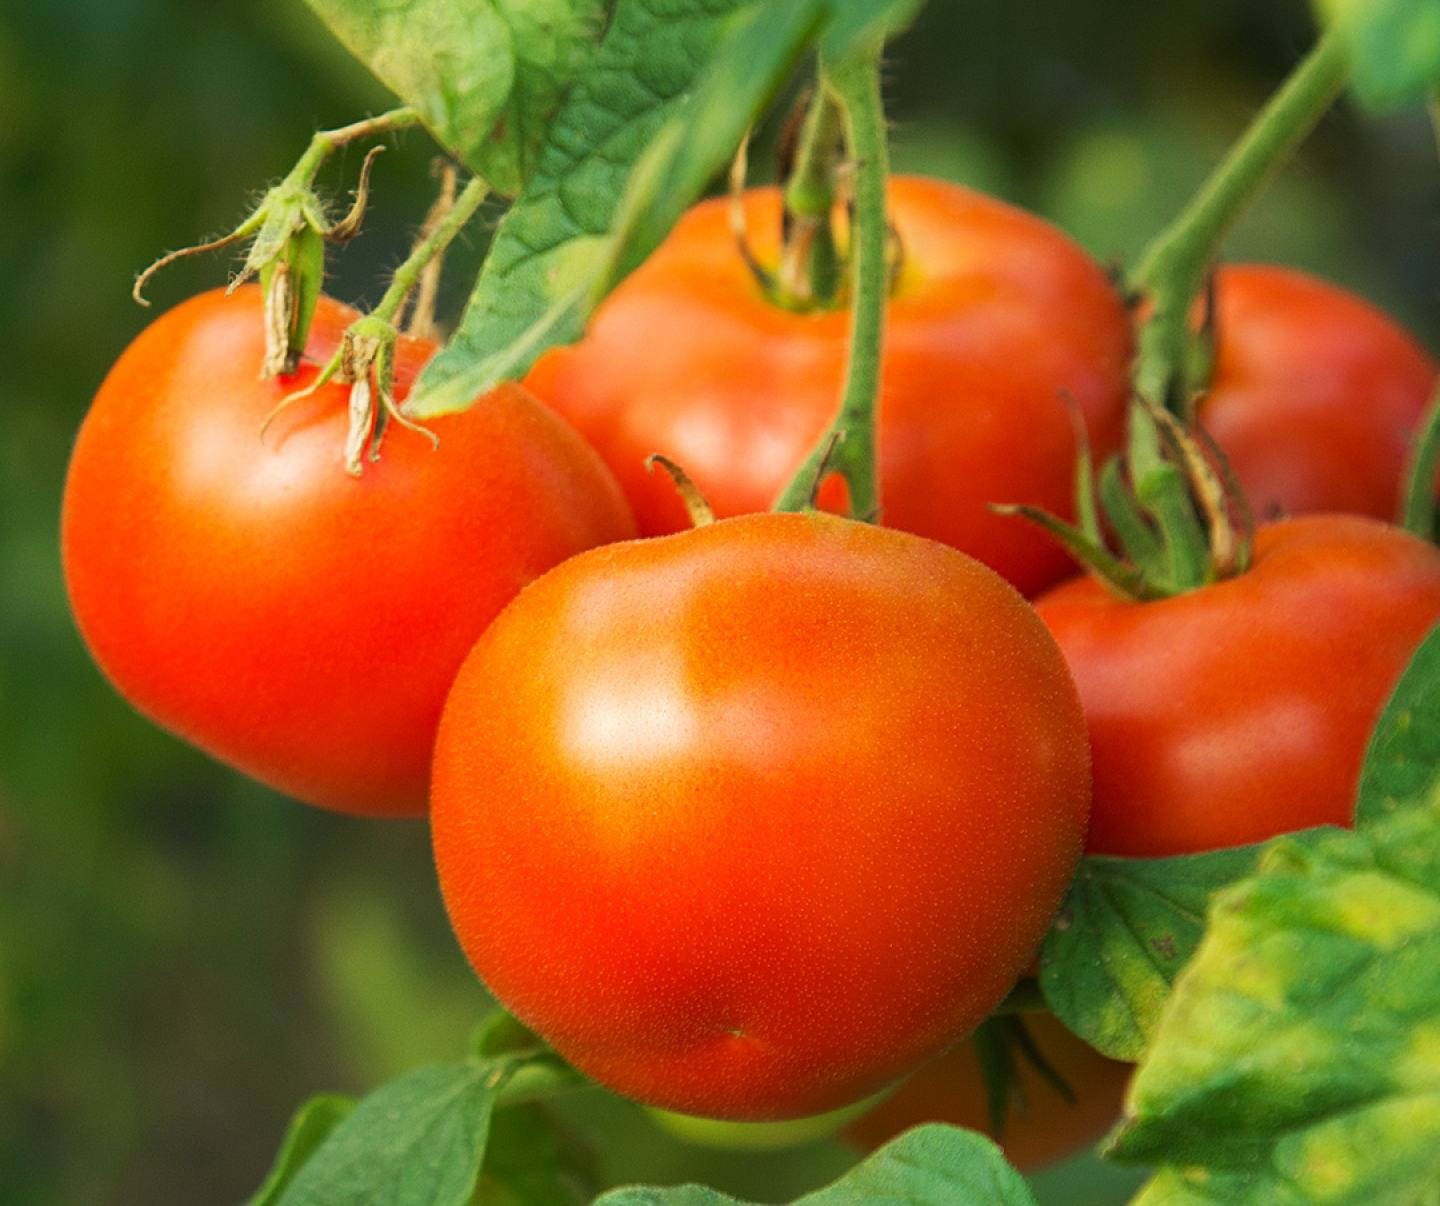 Close up of tomato crop